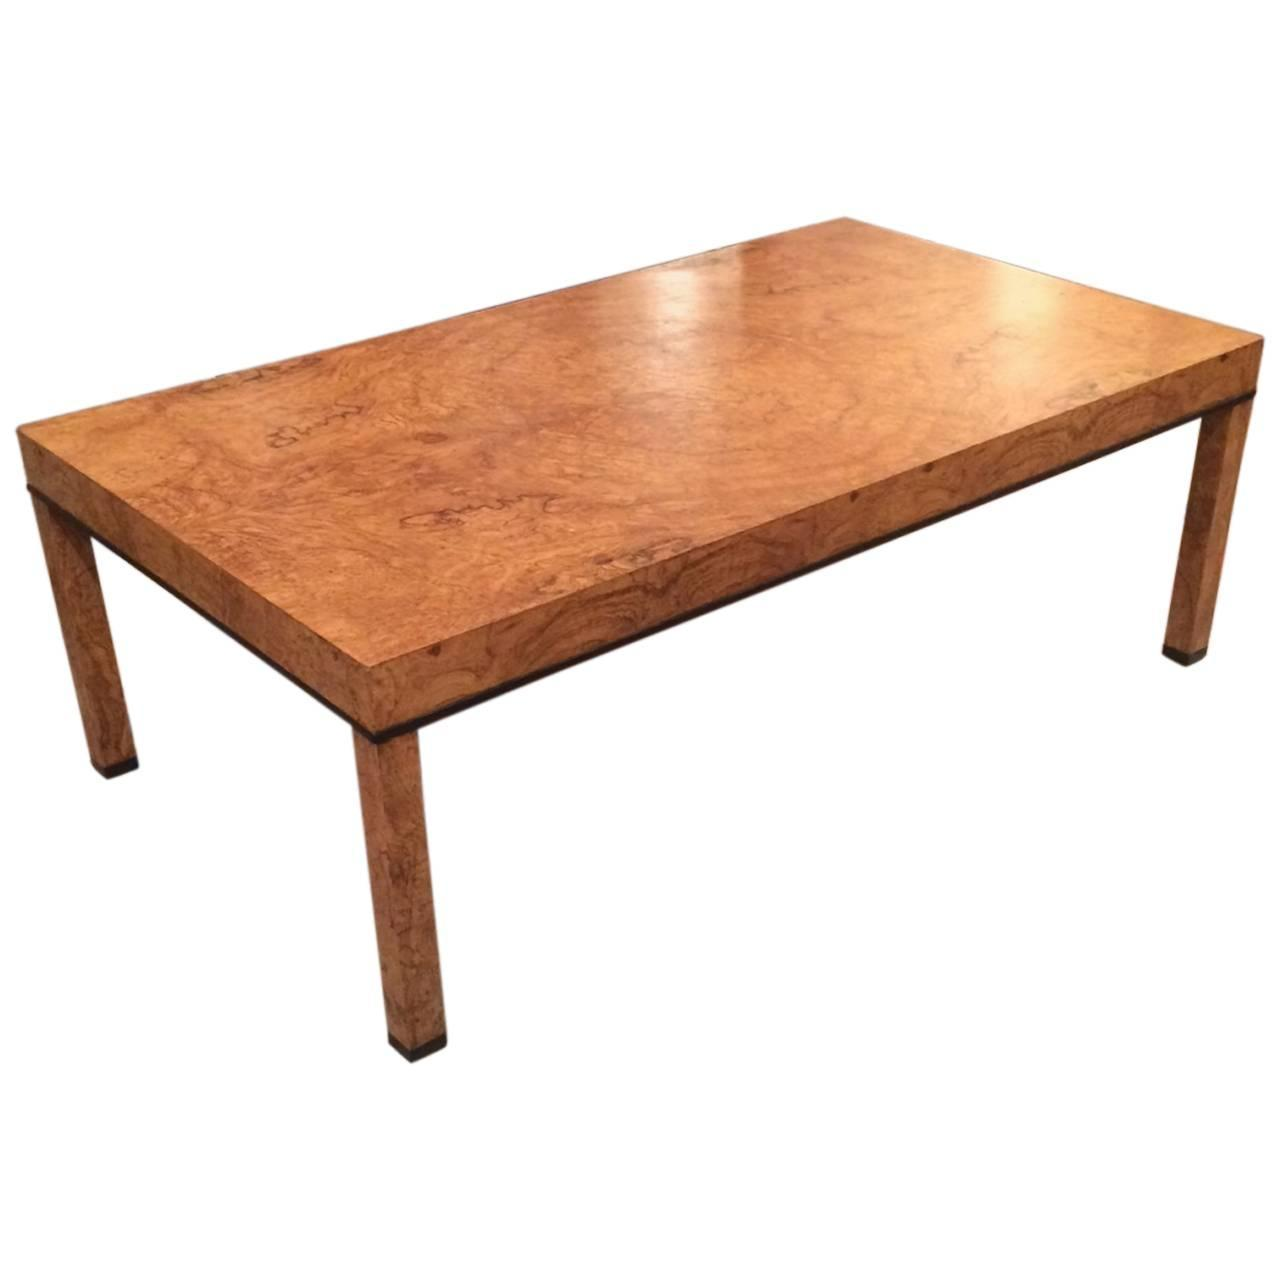 Parsons Style Burl Olive Wood Coffee Table For Sale At 1stdibs